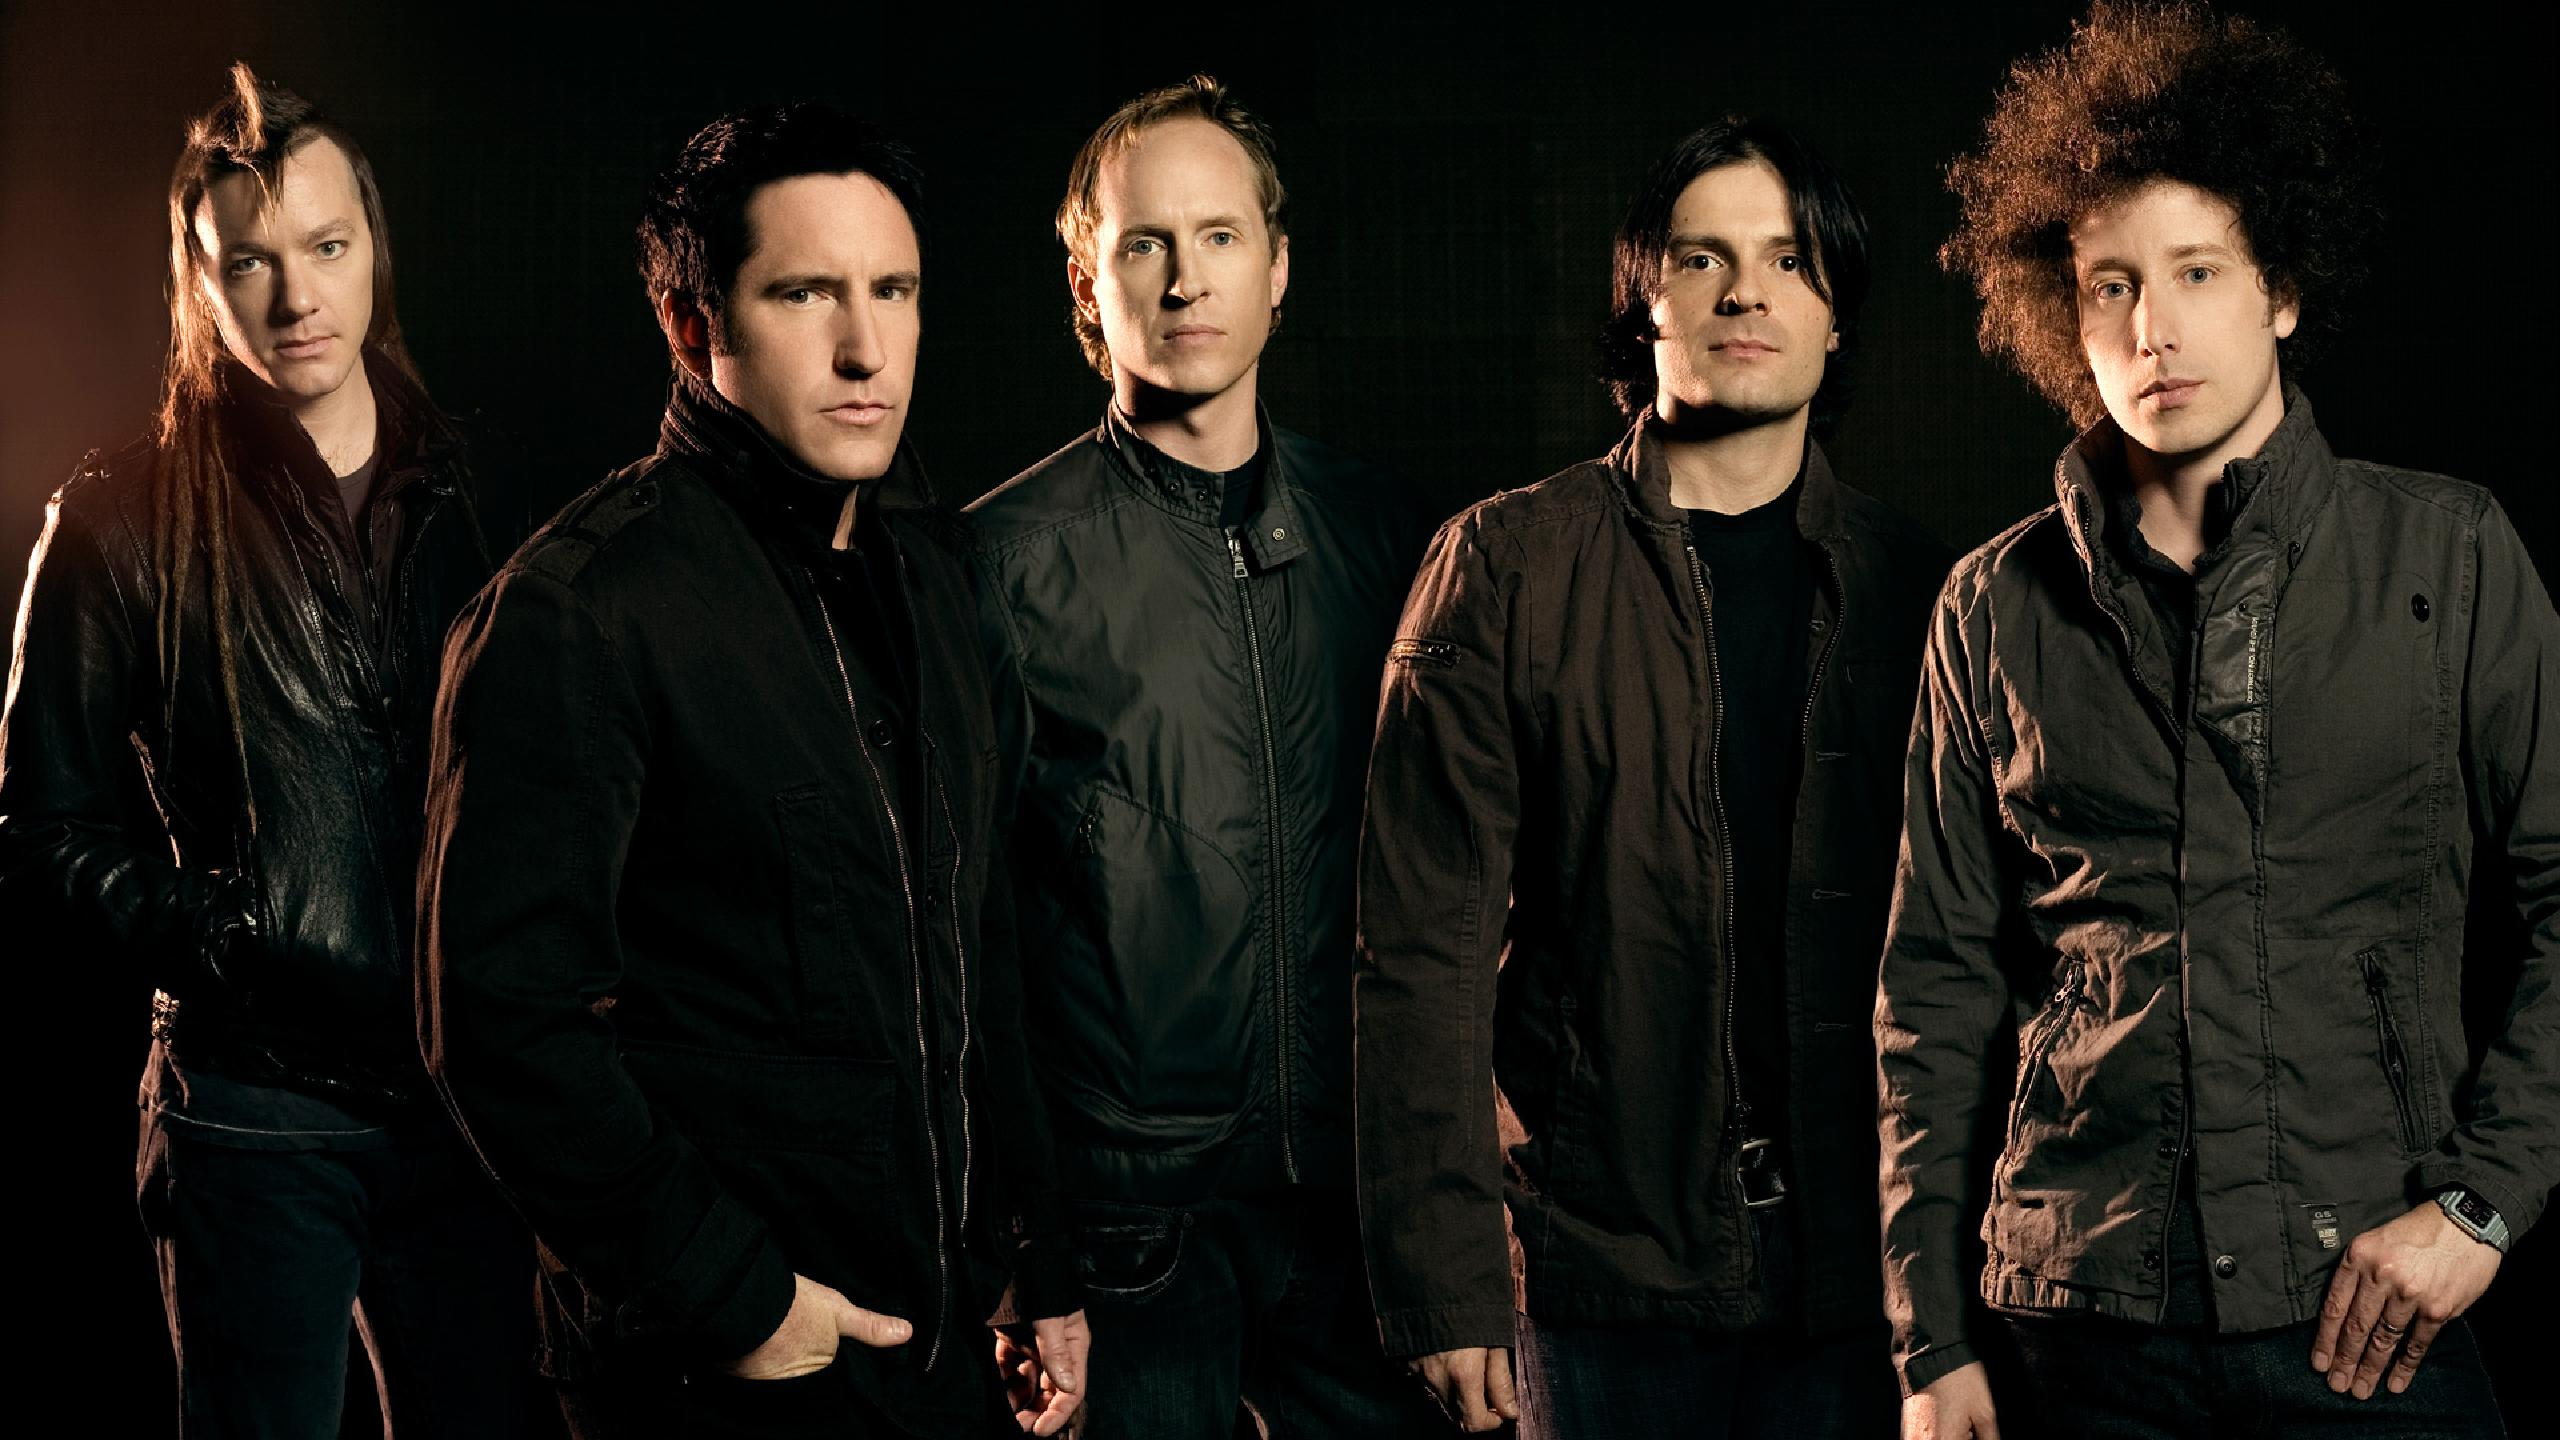 Nine Inch Nails Tour 2020.Nine Inch Nails Tour Dates 2019 2020 Nine Inch Nails